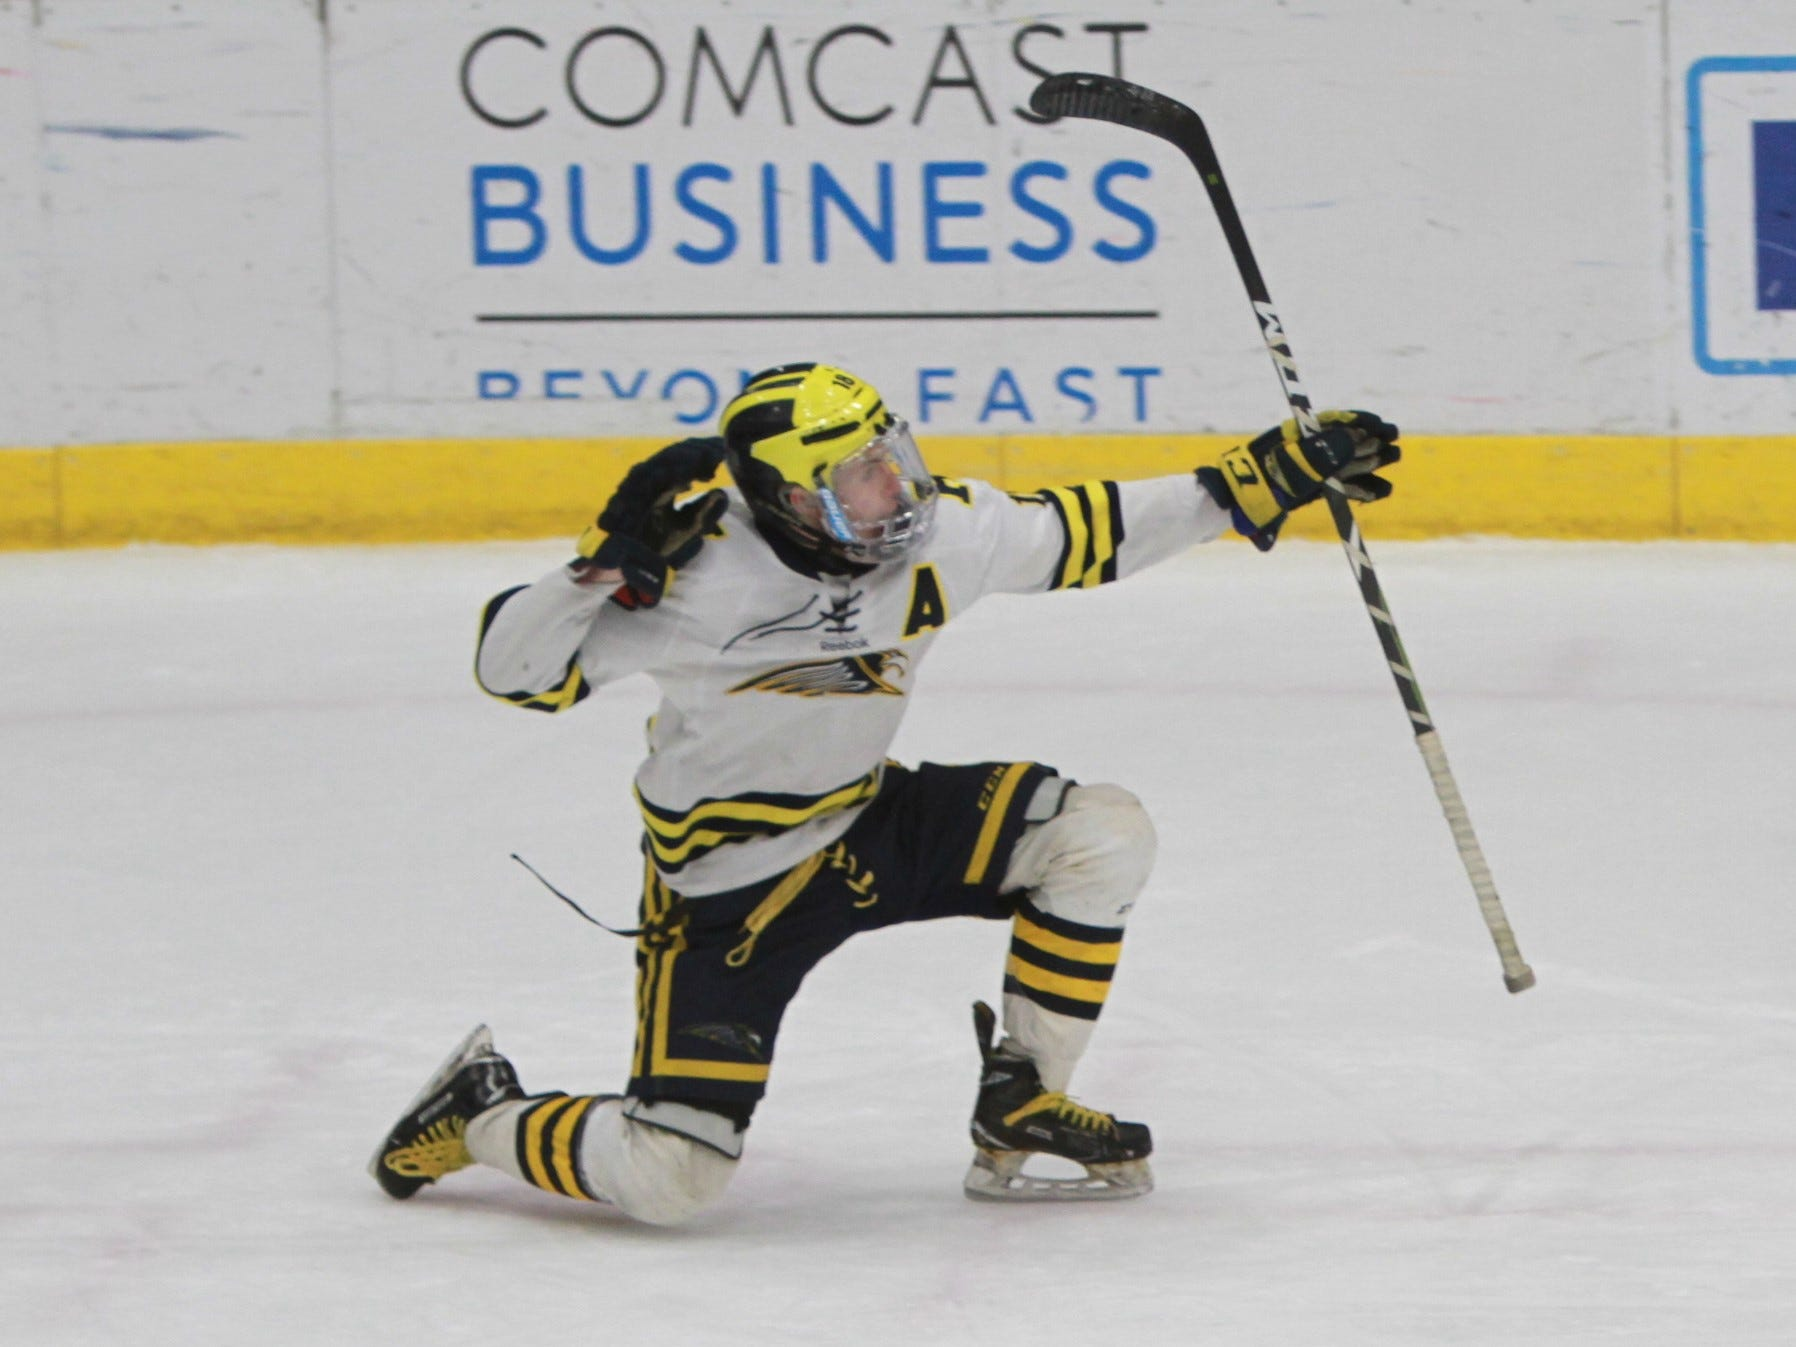 Brenden Tulpa celebrates after scoring the first goal in Hartland's 6-0 victory over Forest Hills Eastern in the state hockey quarterfinals on Tuesday, March 5, 2019.